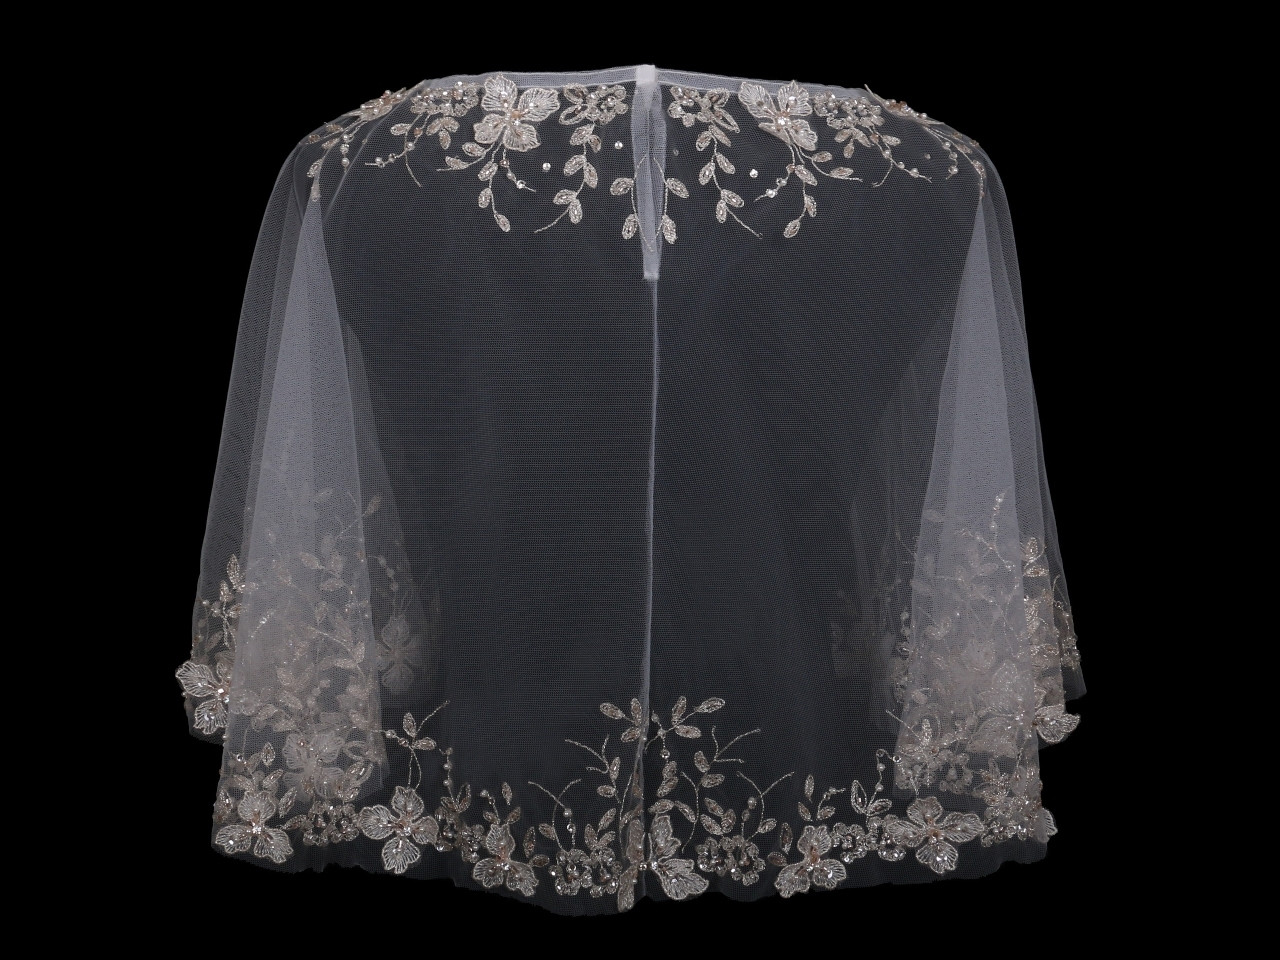 En Vogue Bridal Capelet CP1824 - Emroidered and beaded design